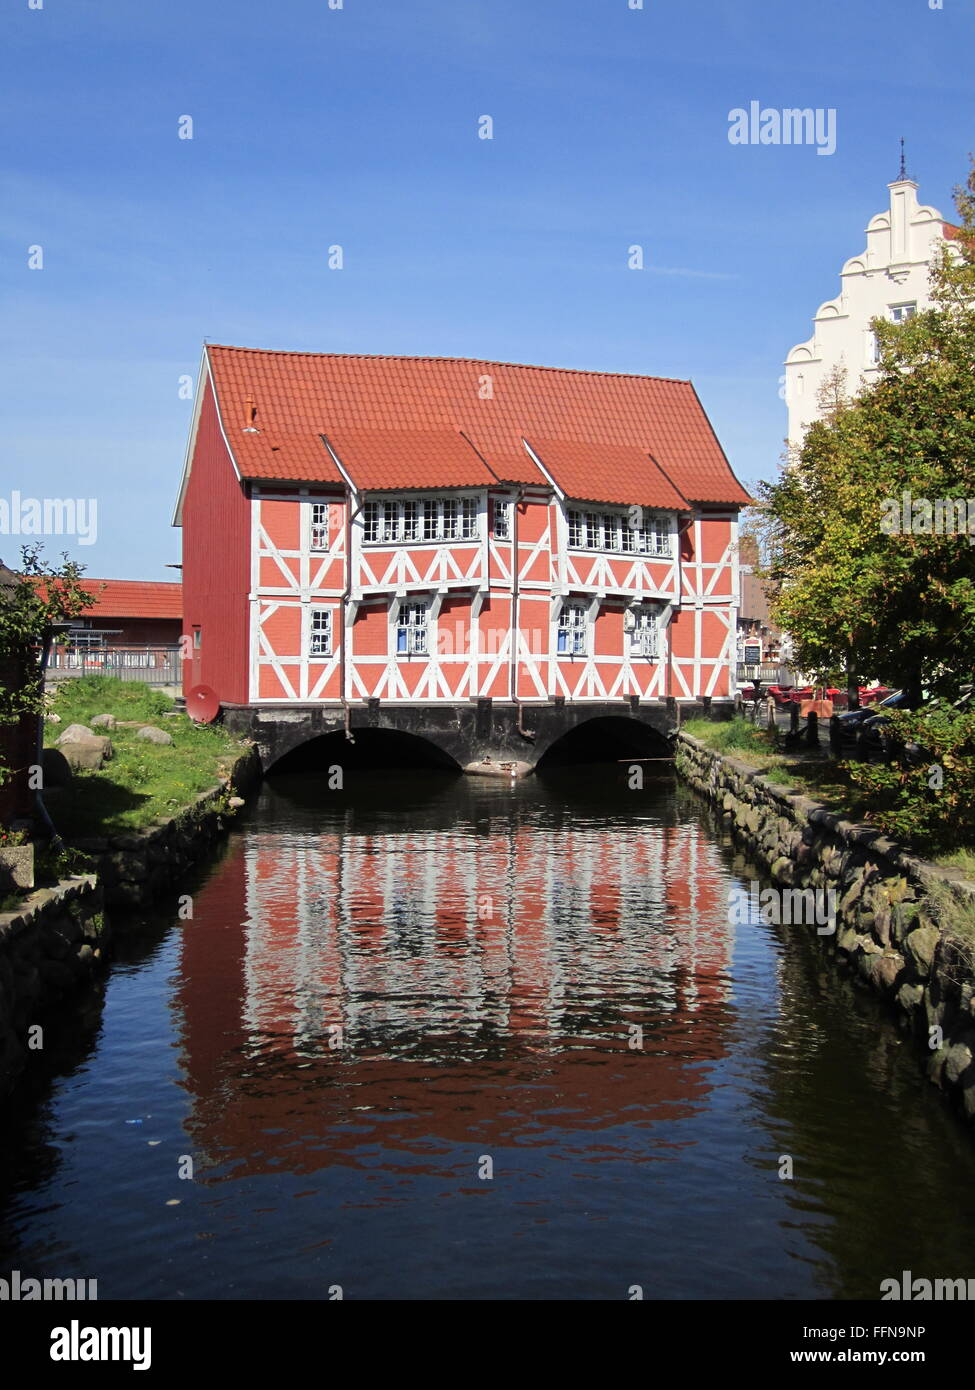 geography / travel, Germany, Mecklenburg-West Pomerania, Wismar, buildings, Grube Bridge, Additional-Rights-Clearance Stock Photo